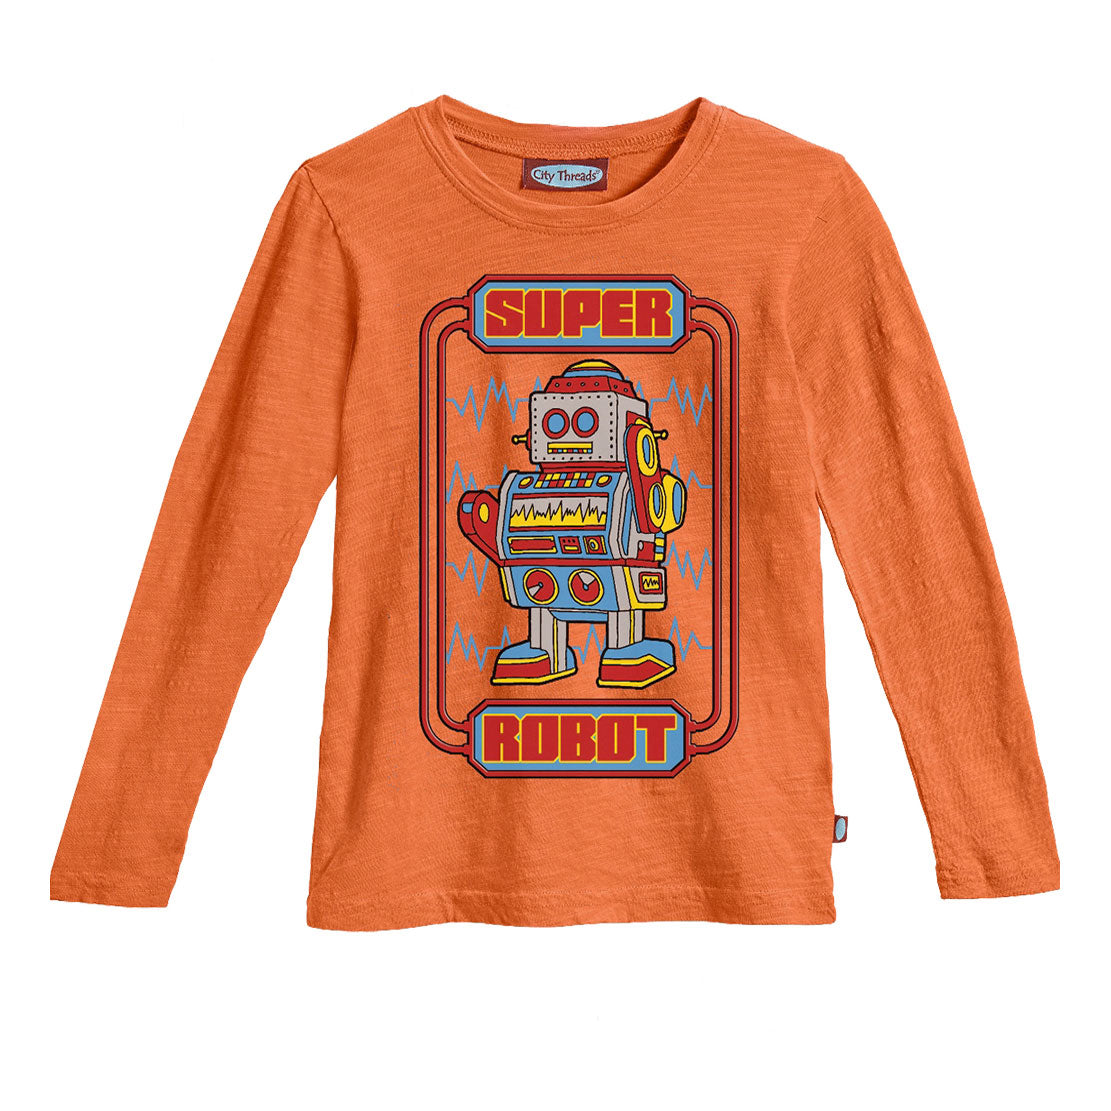 Boys' Super Robot Shirt by City Threads